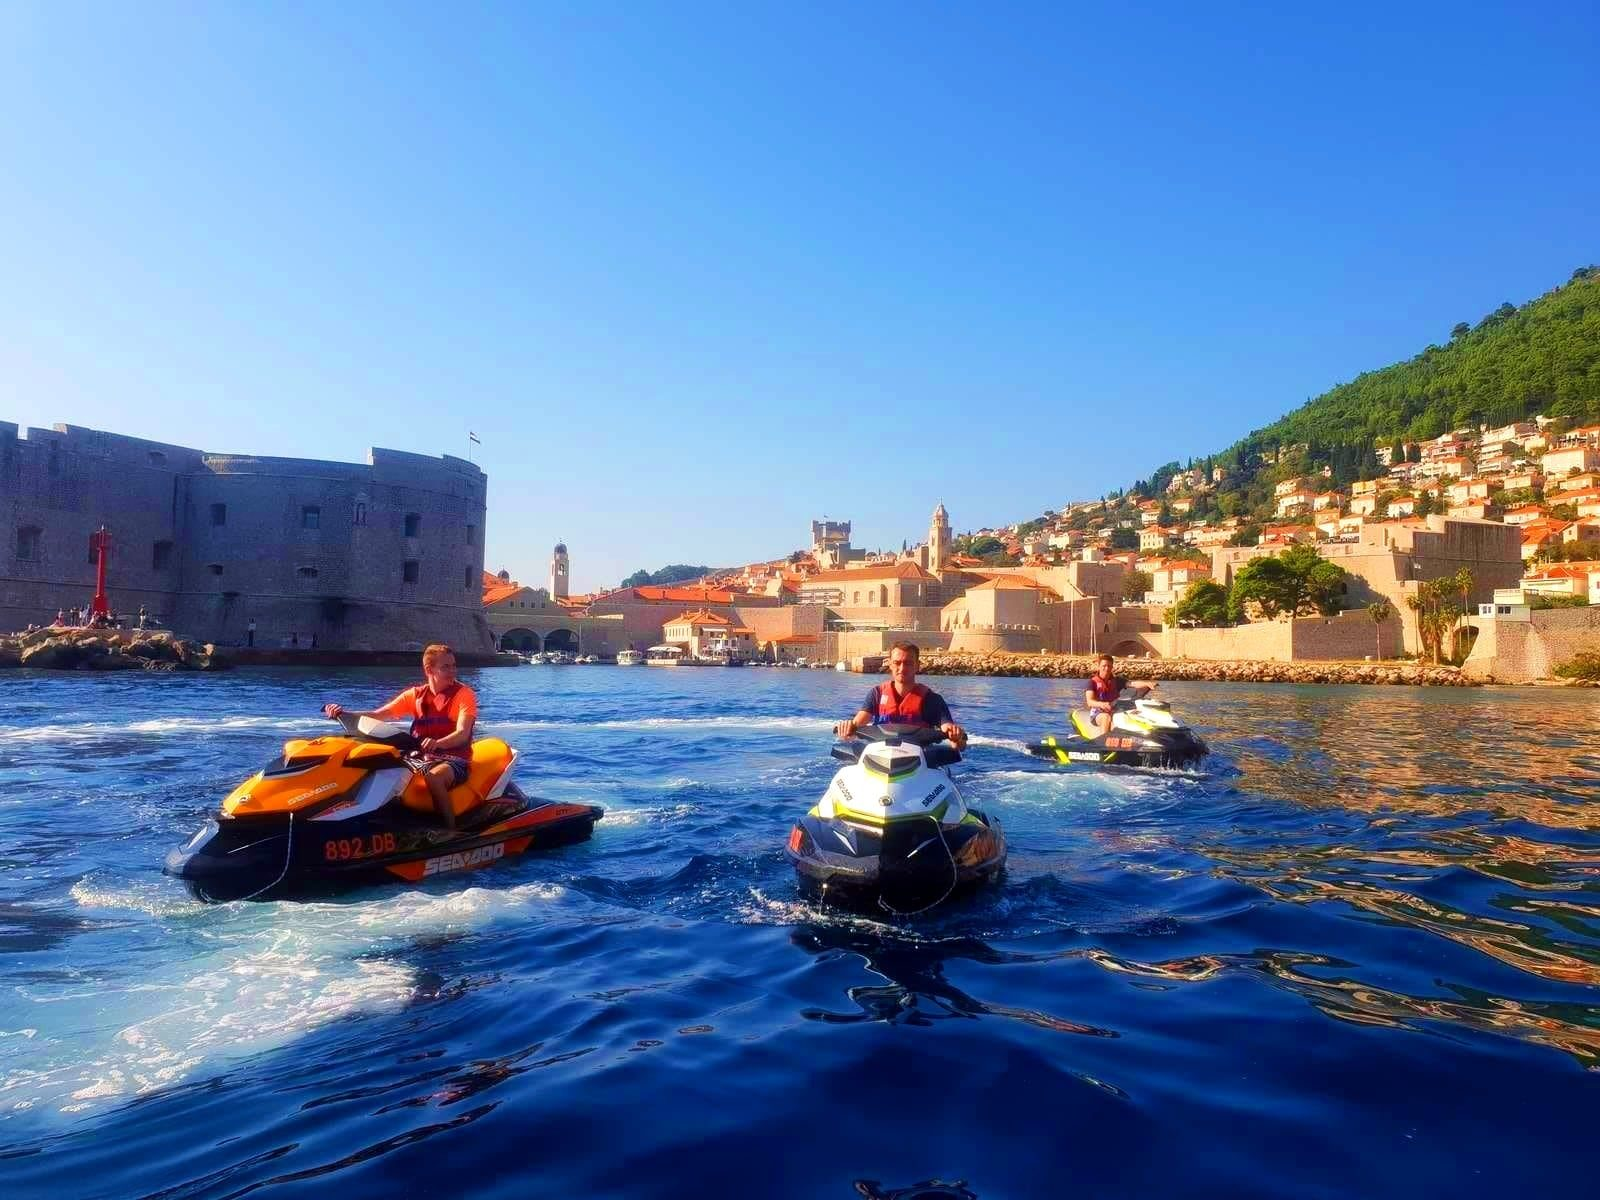 A group of participants of the Jet Ski excursion to Dubrovnik is leaving the city.